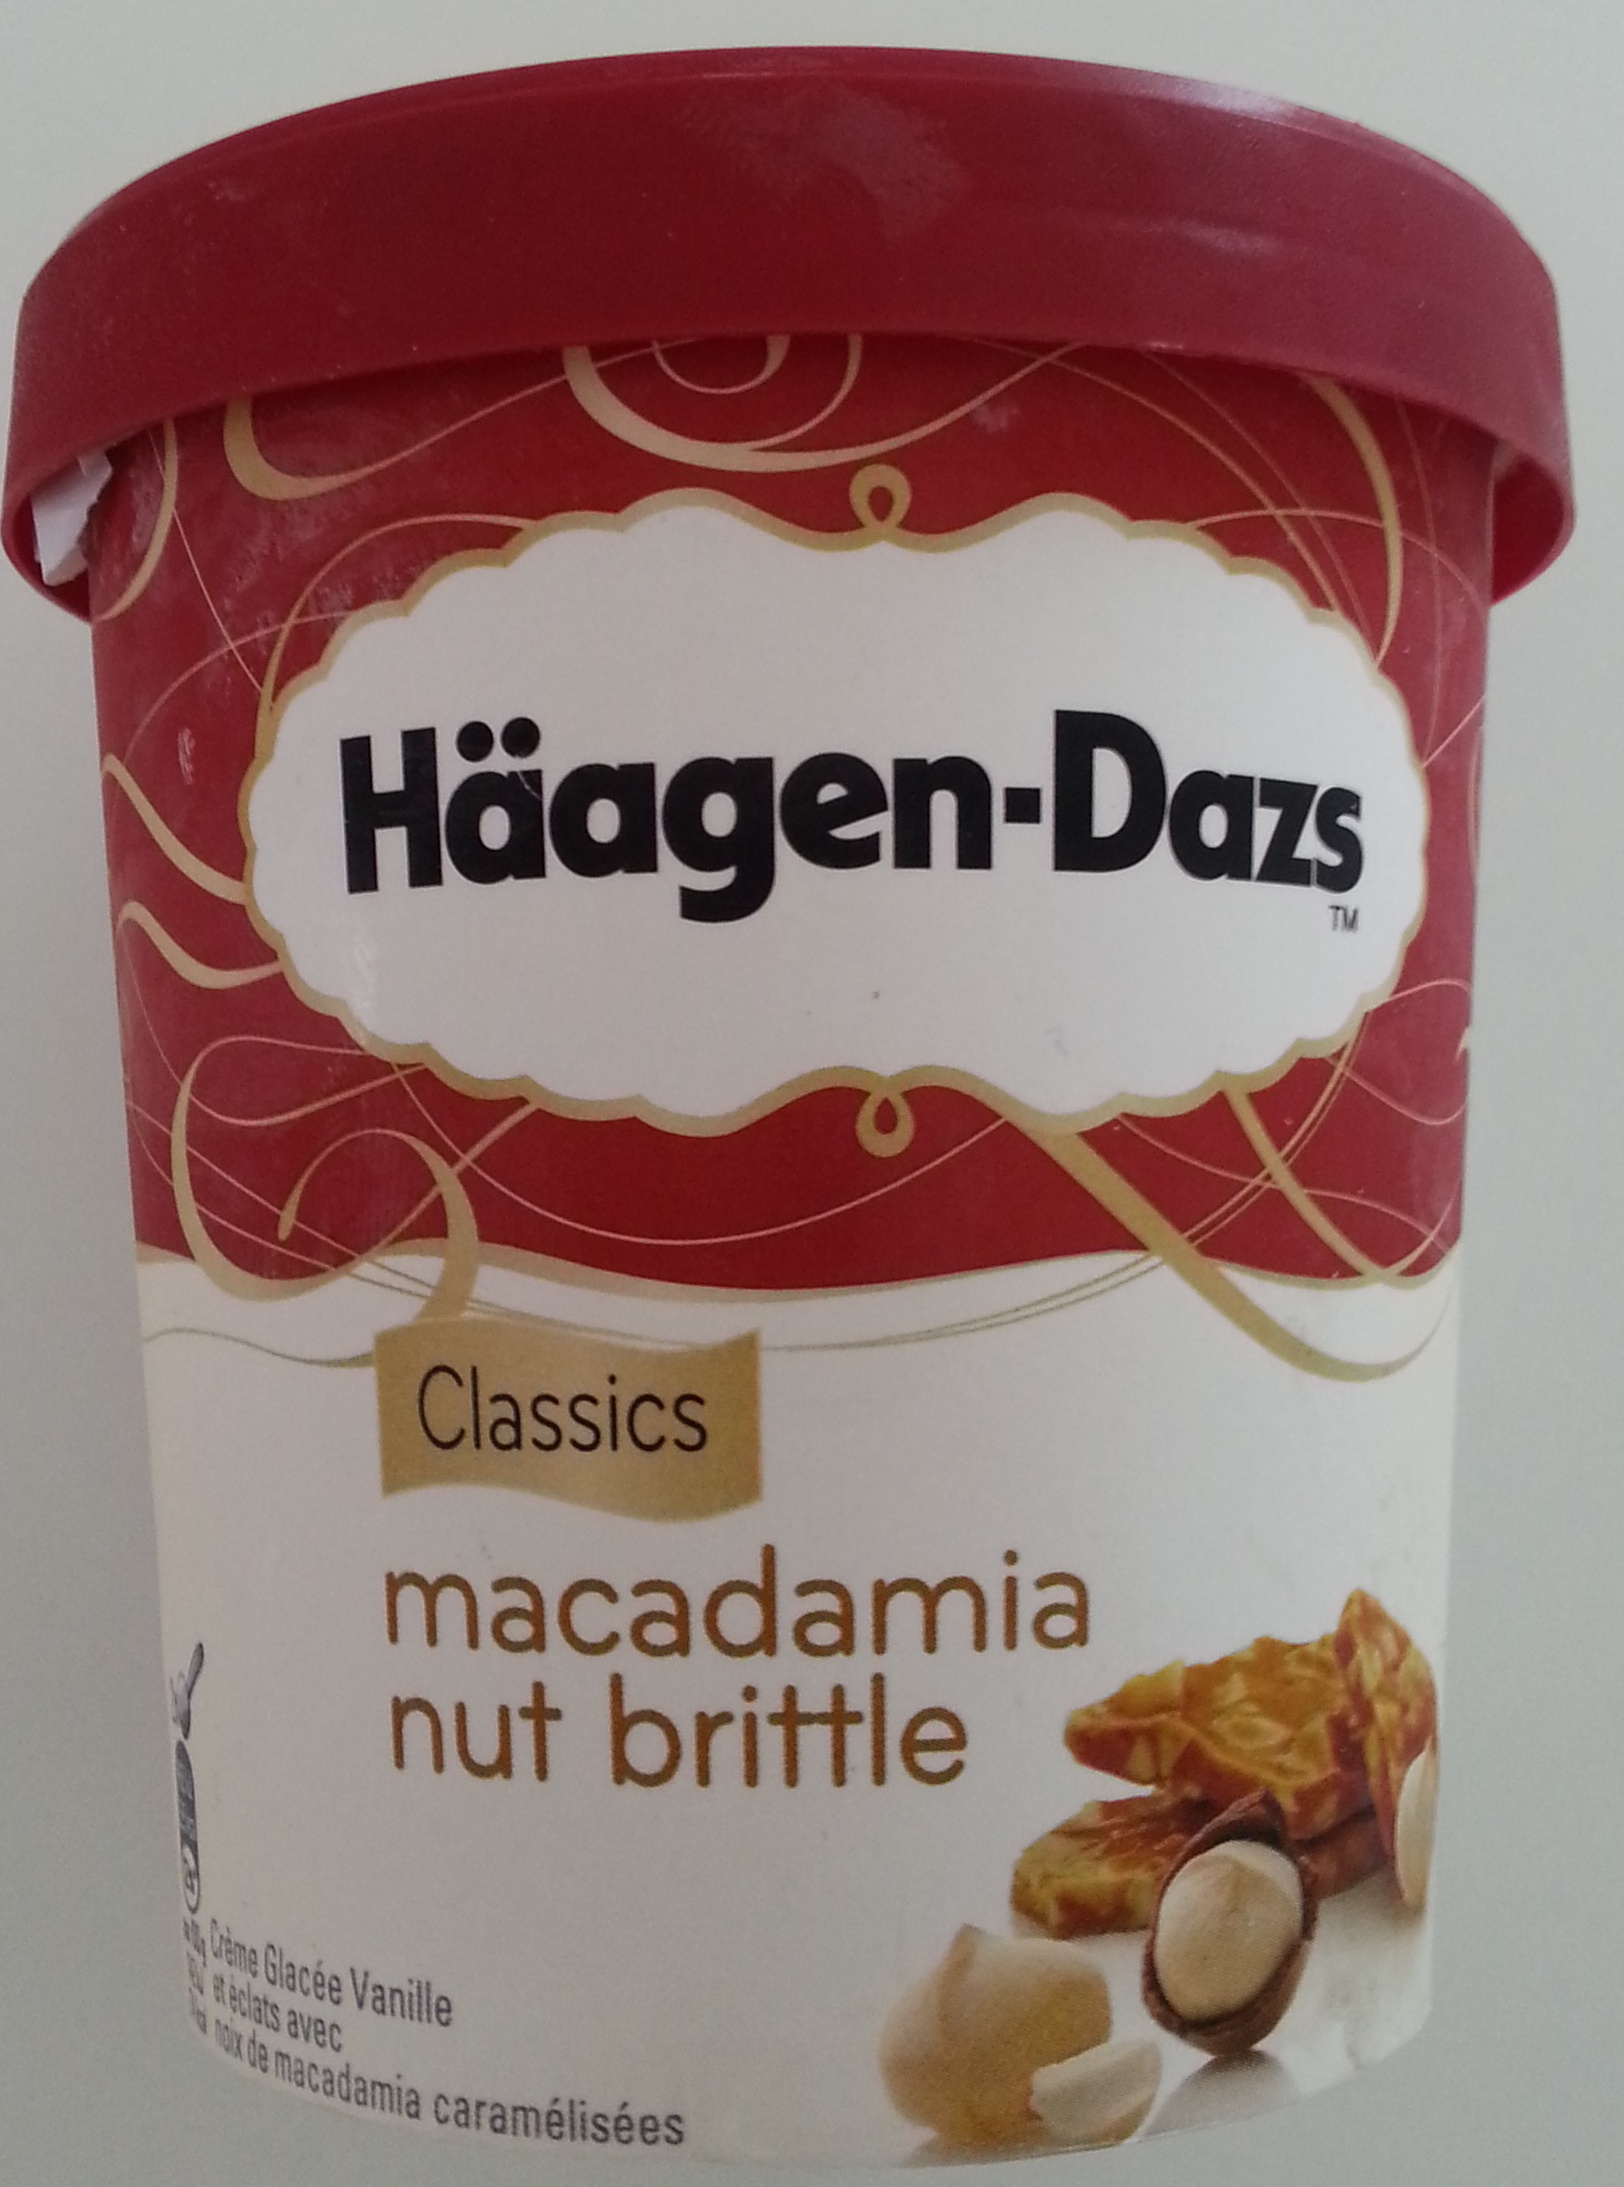 Macadamia nut brittle - Product